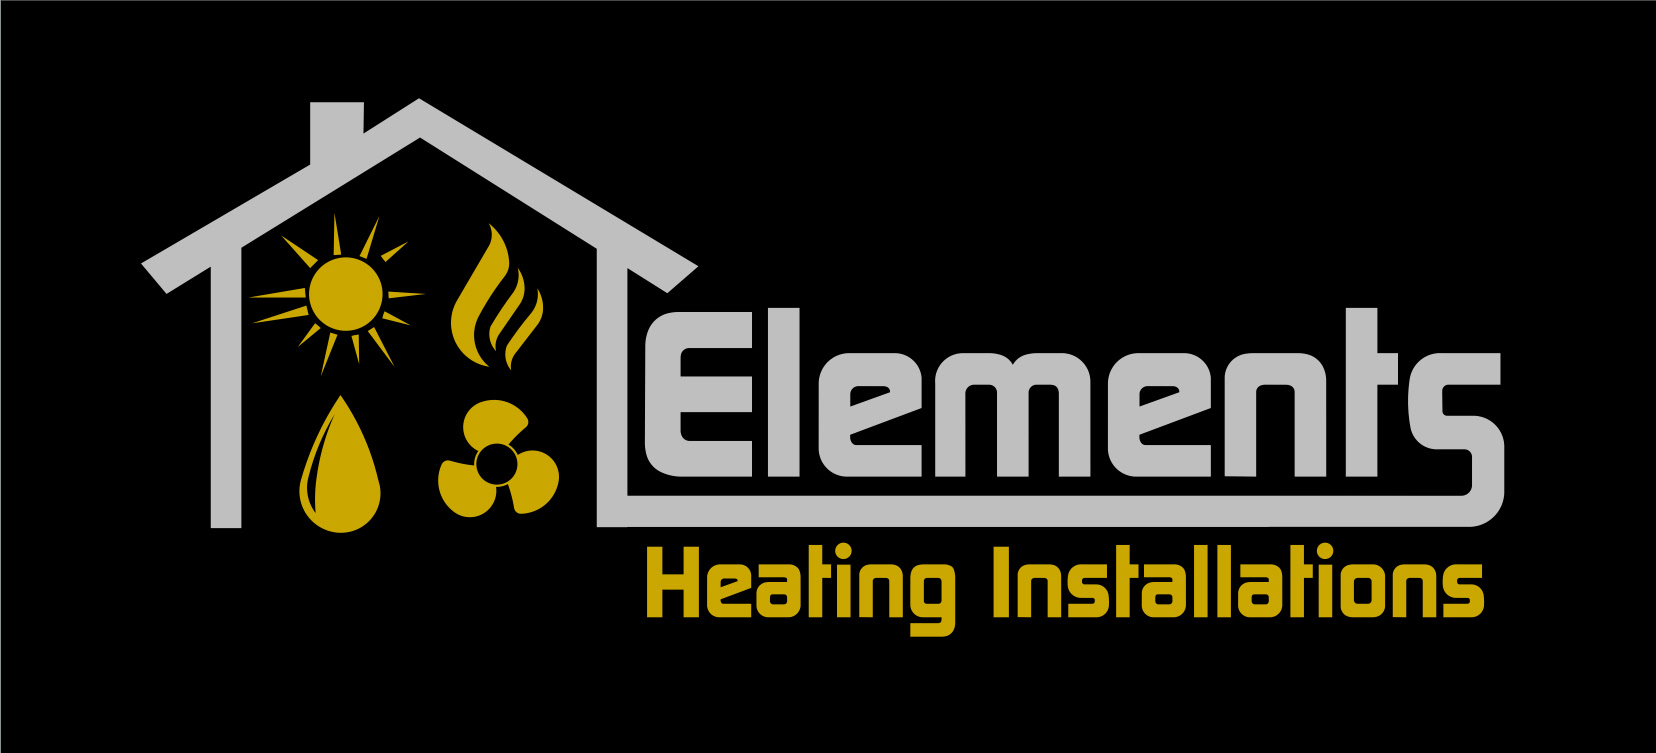 elements heating installations Verified Logo